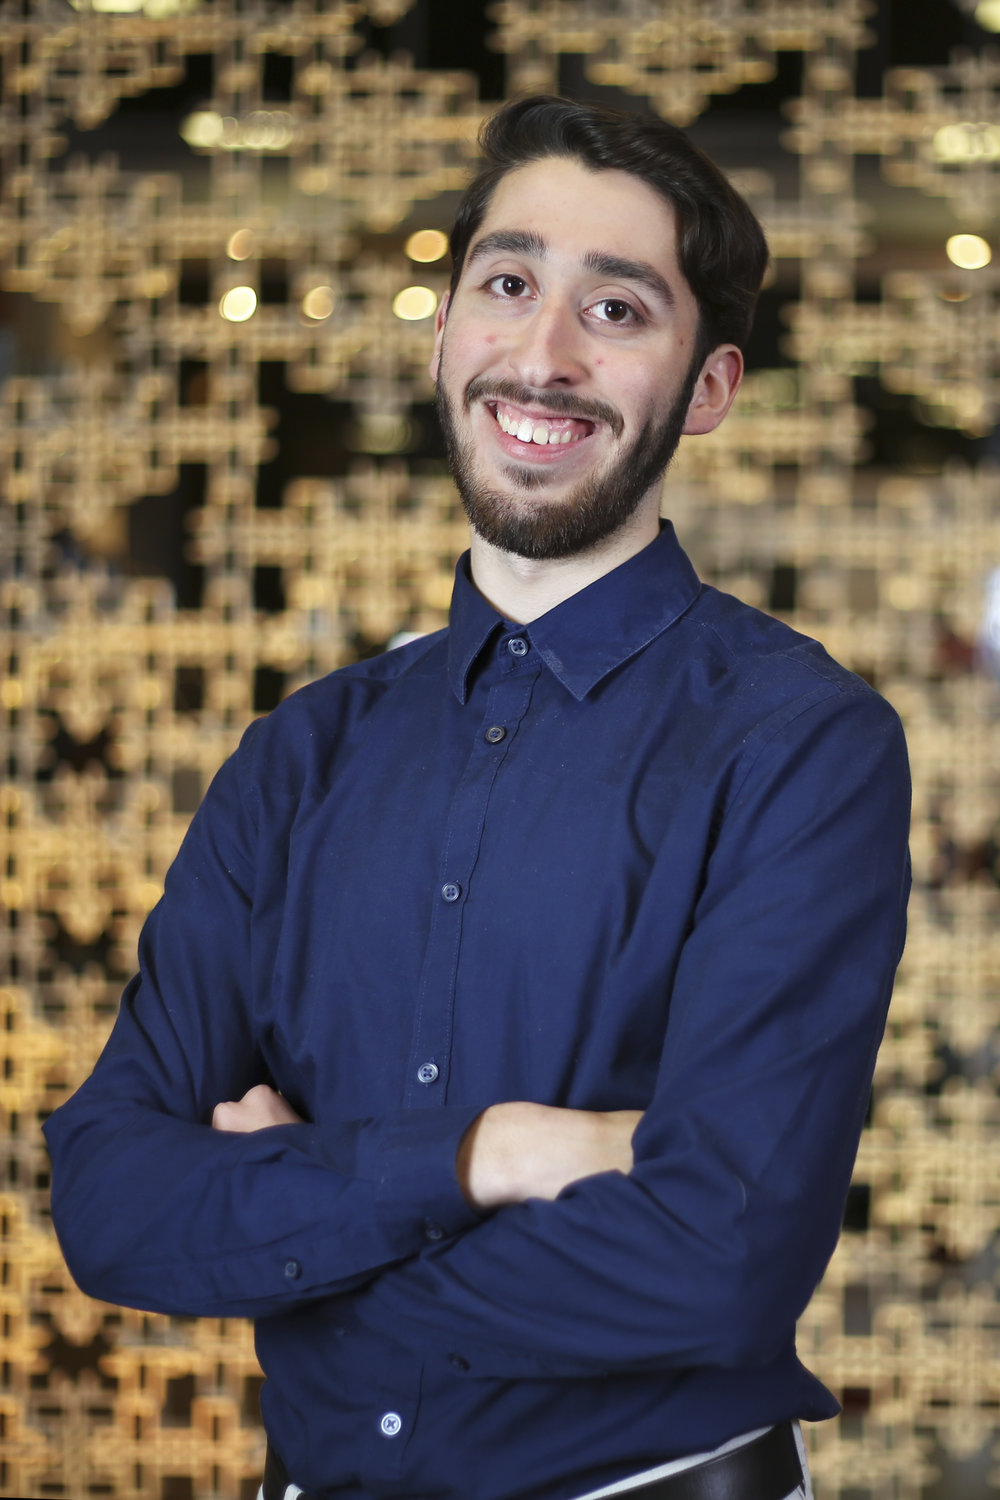 Daniel Cruz - Co-Founder / Graphics Coordinatoris a Temple University graduate with a bachelors of science in architecture. He has called Kensington, Philadelphia home his entire life but has gone to high school and college in the North Philadelphia section of the city. Daniel has witnessed urban blight in these communities and hopes to use BRIC and architecture to bring about change to the North Philadelphia area.